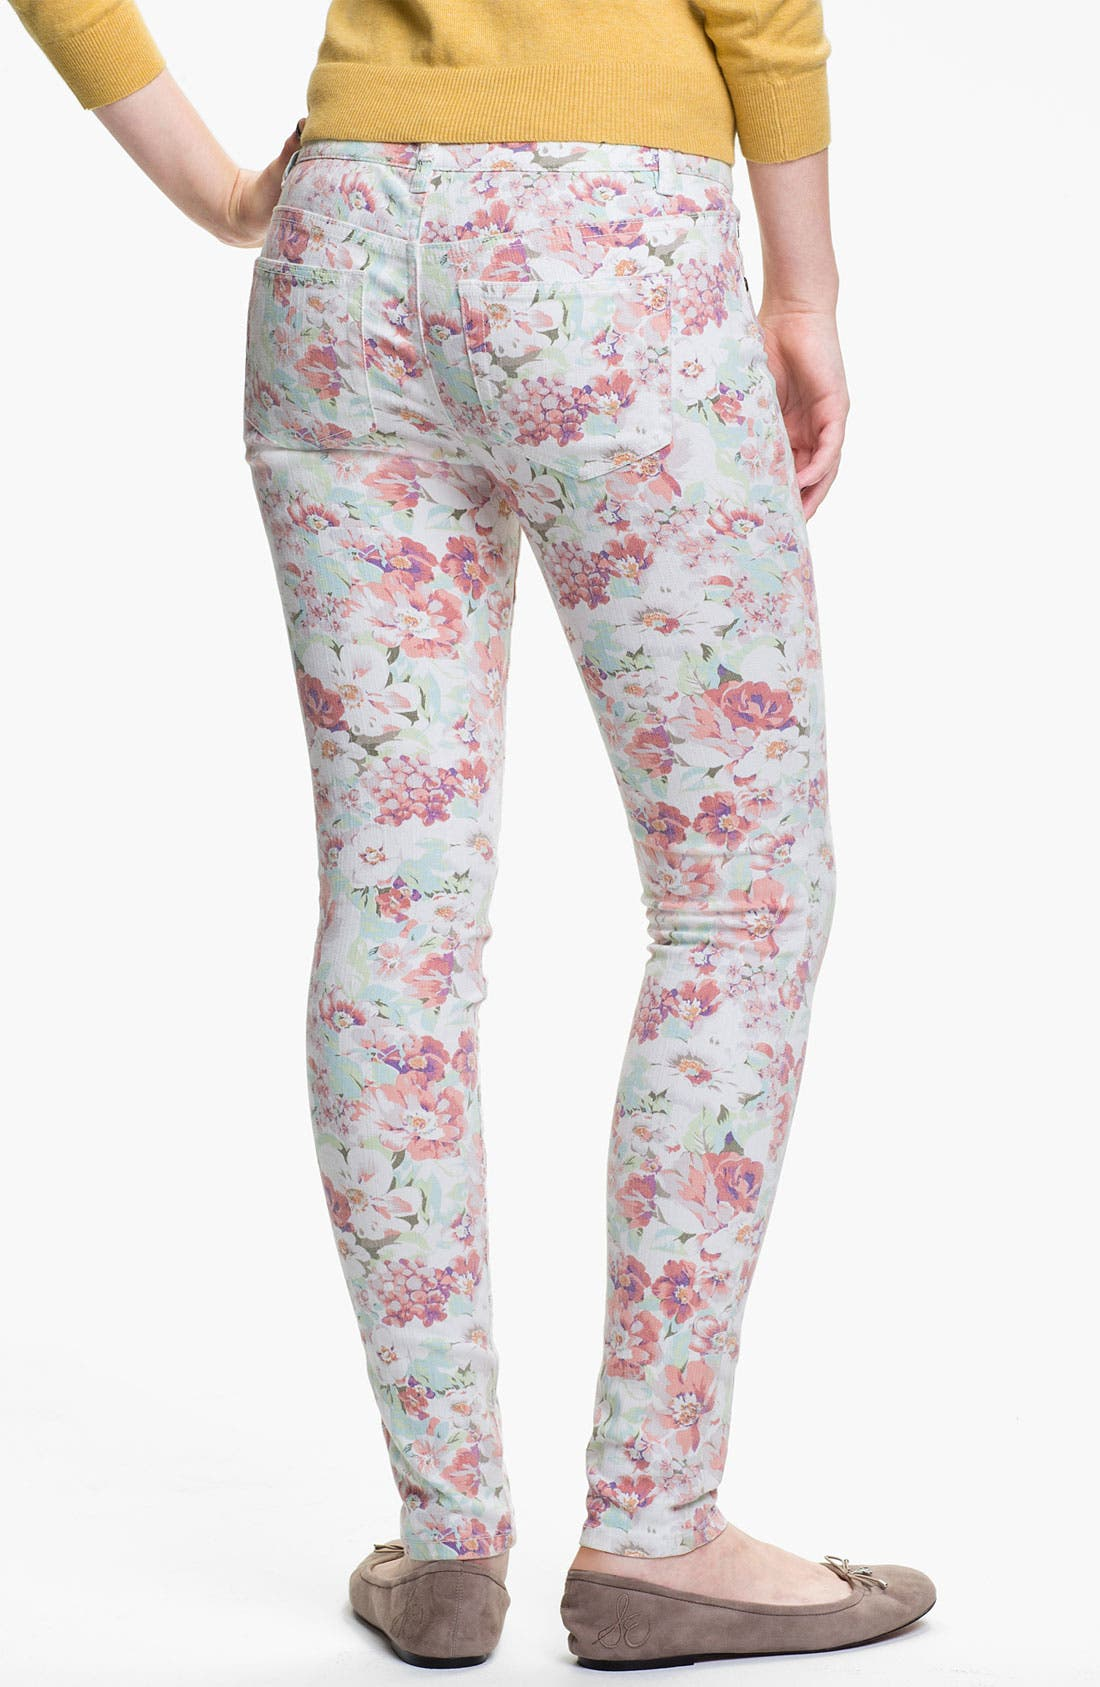 Alternate Image 1 Selected - Fire Floral Print Skinny Jeans (Juniors)